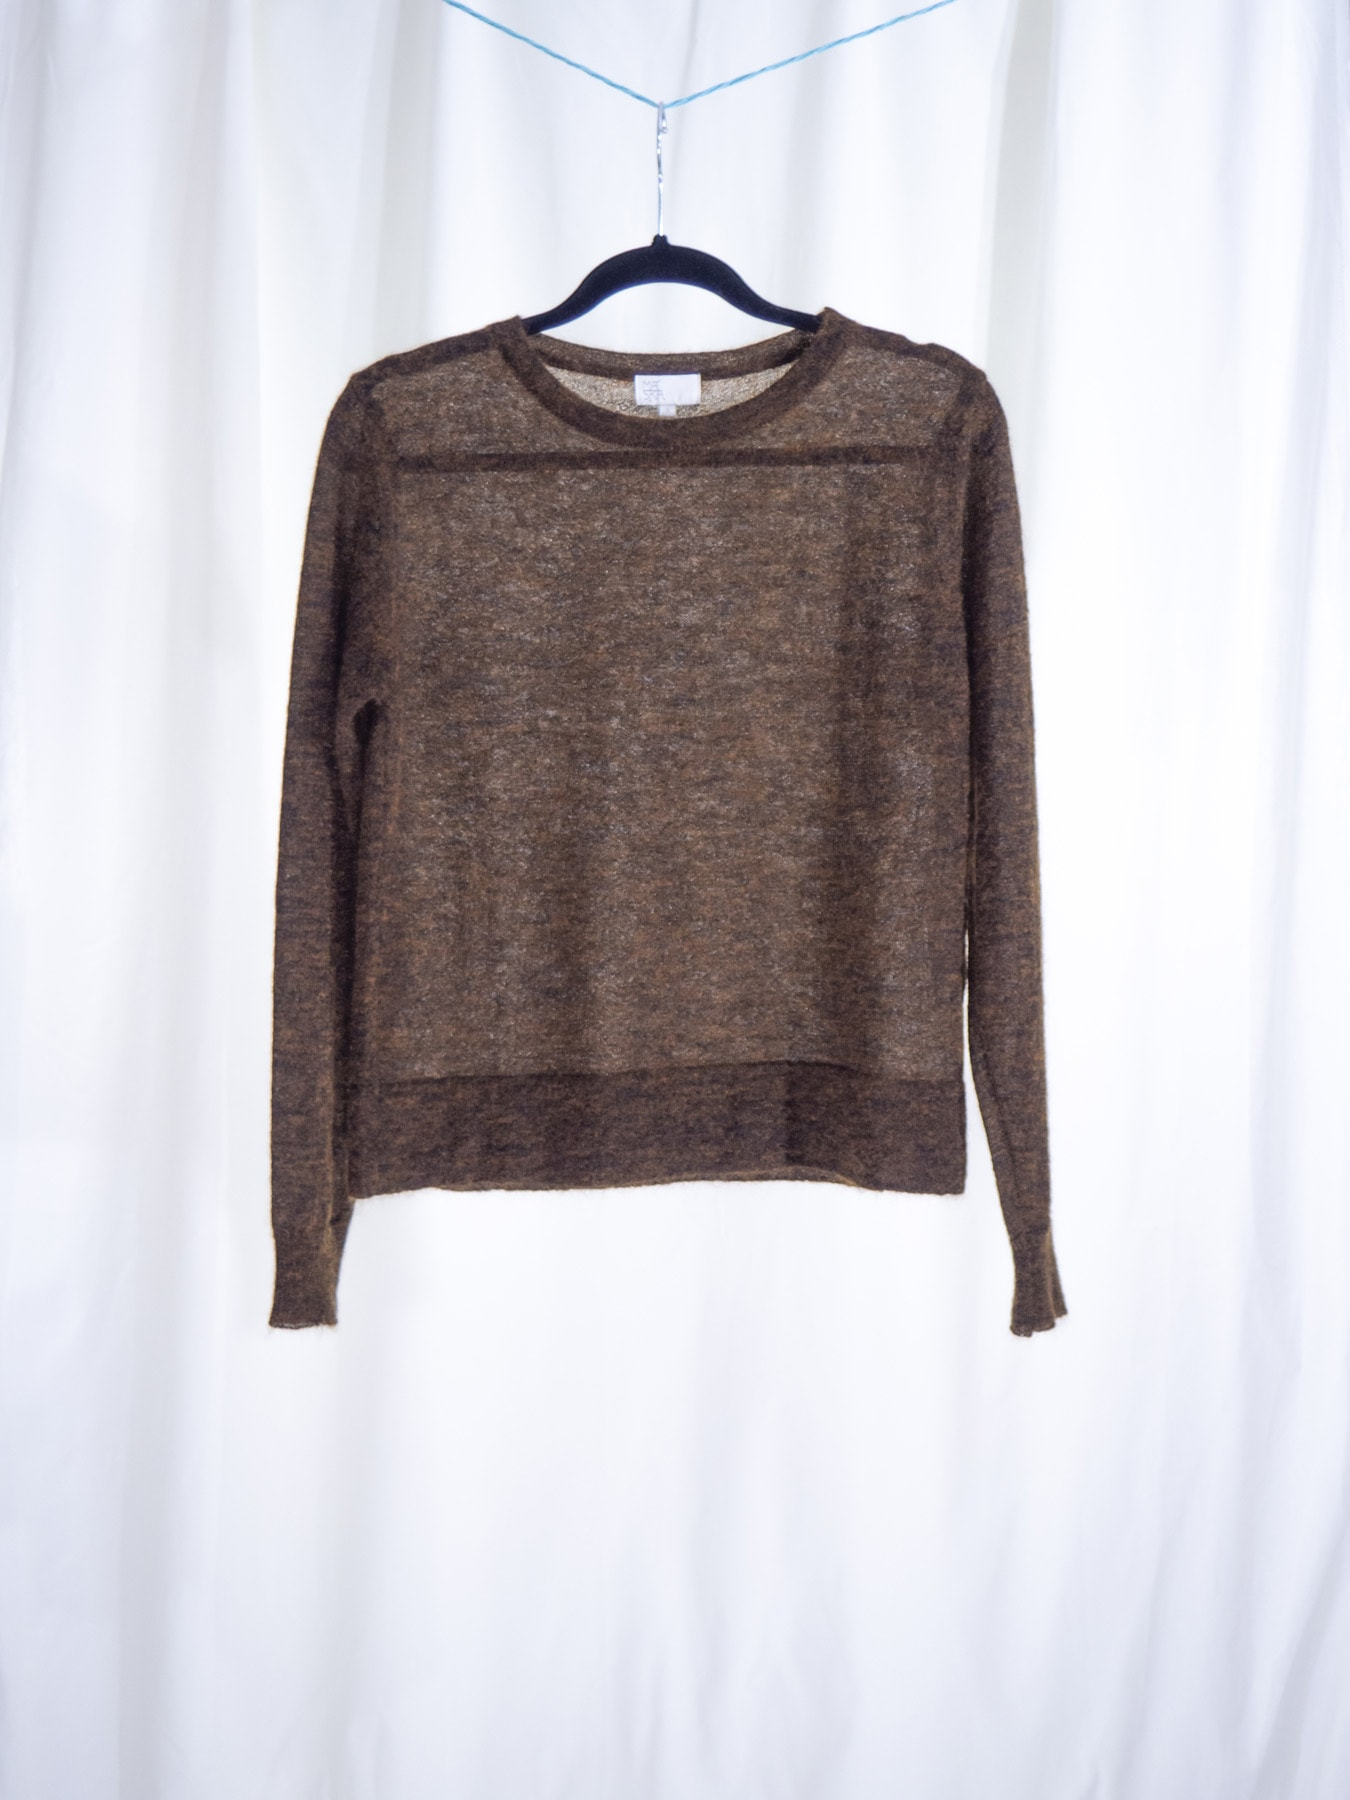 Alsu sweater